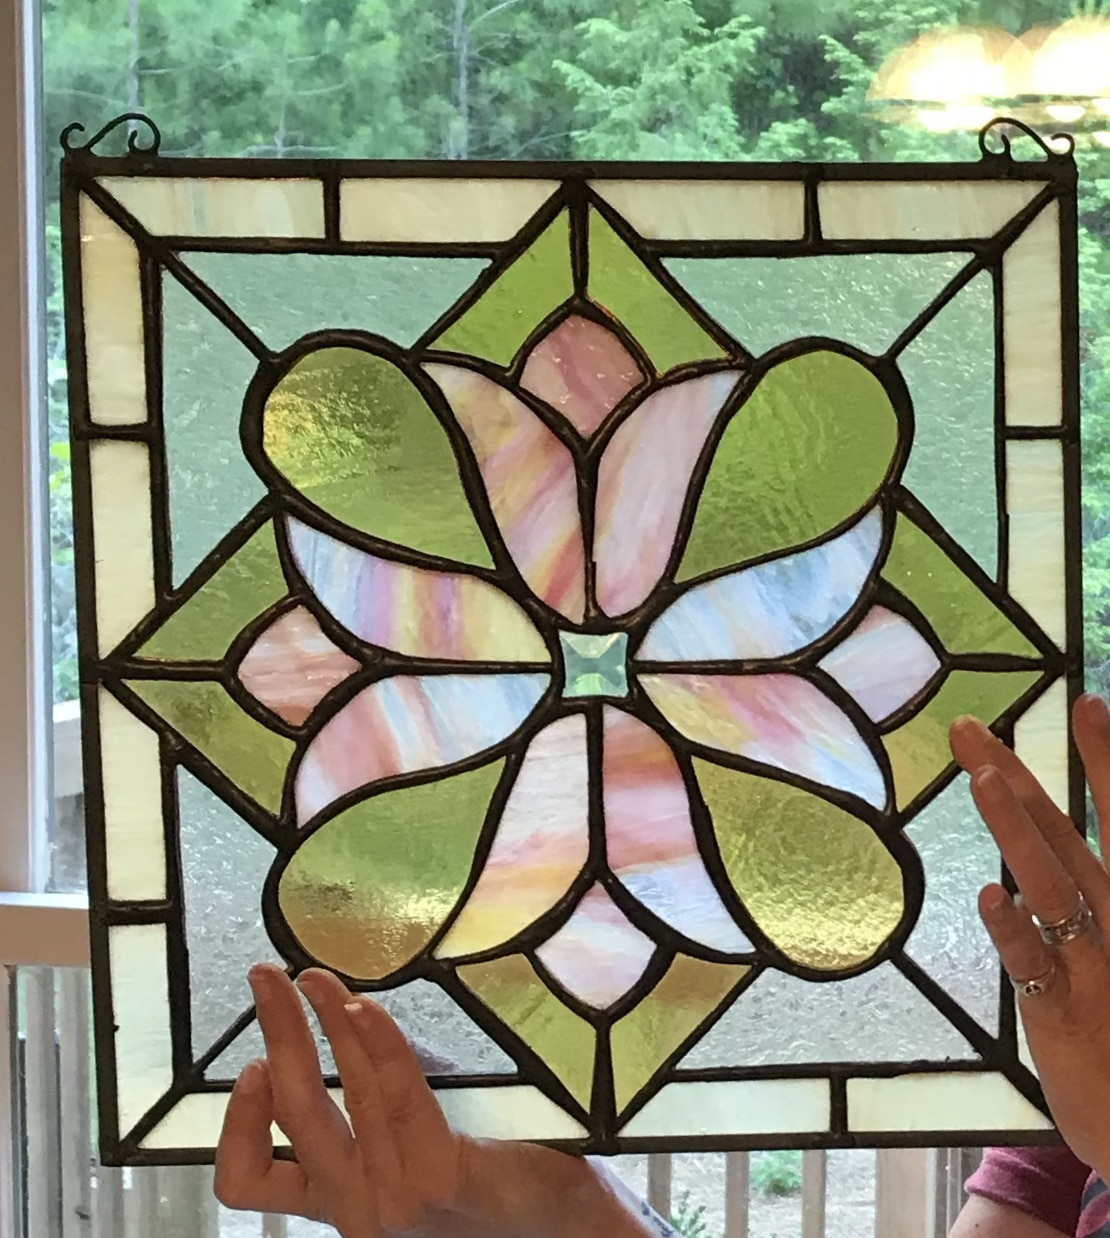 You can create gorgeous stained glass and more at Samford Academy of the Arts this fall